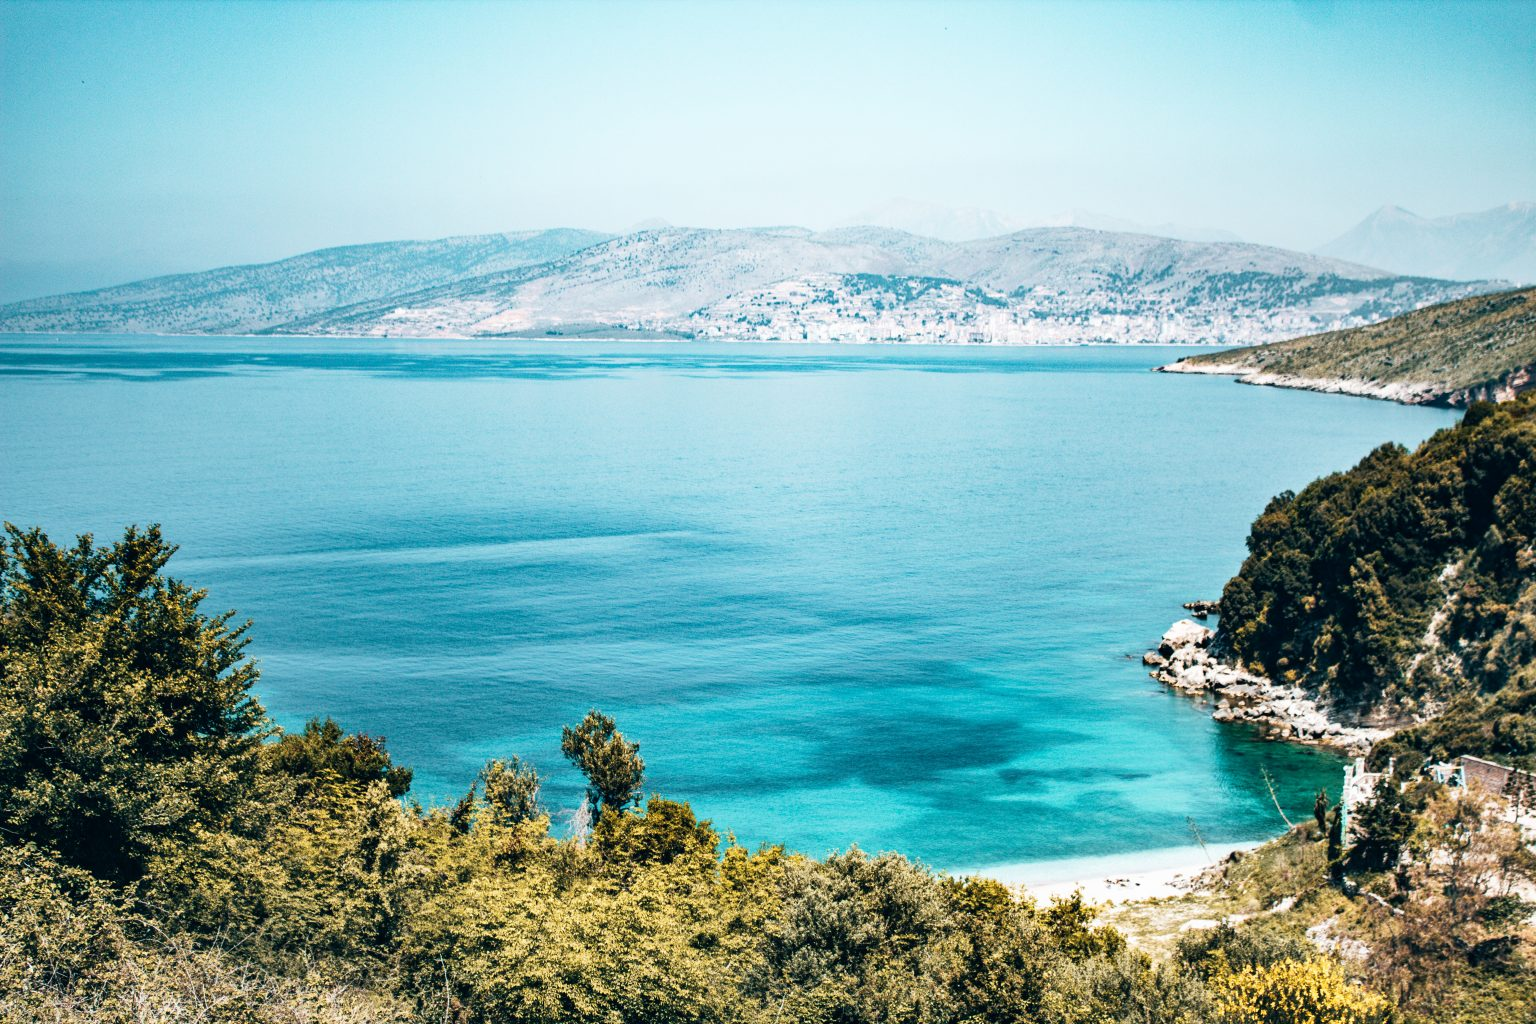 The beautiful beaches of the Albanian Riviera